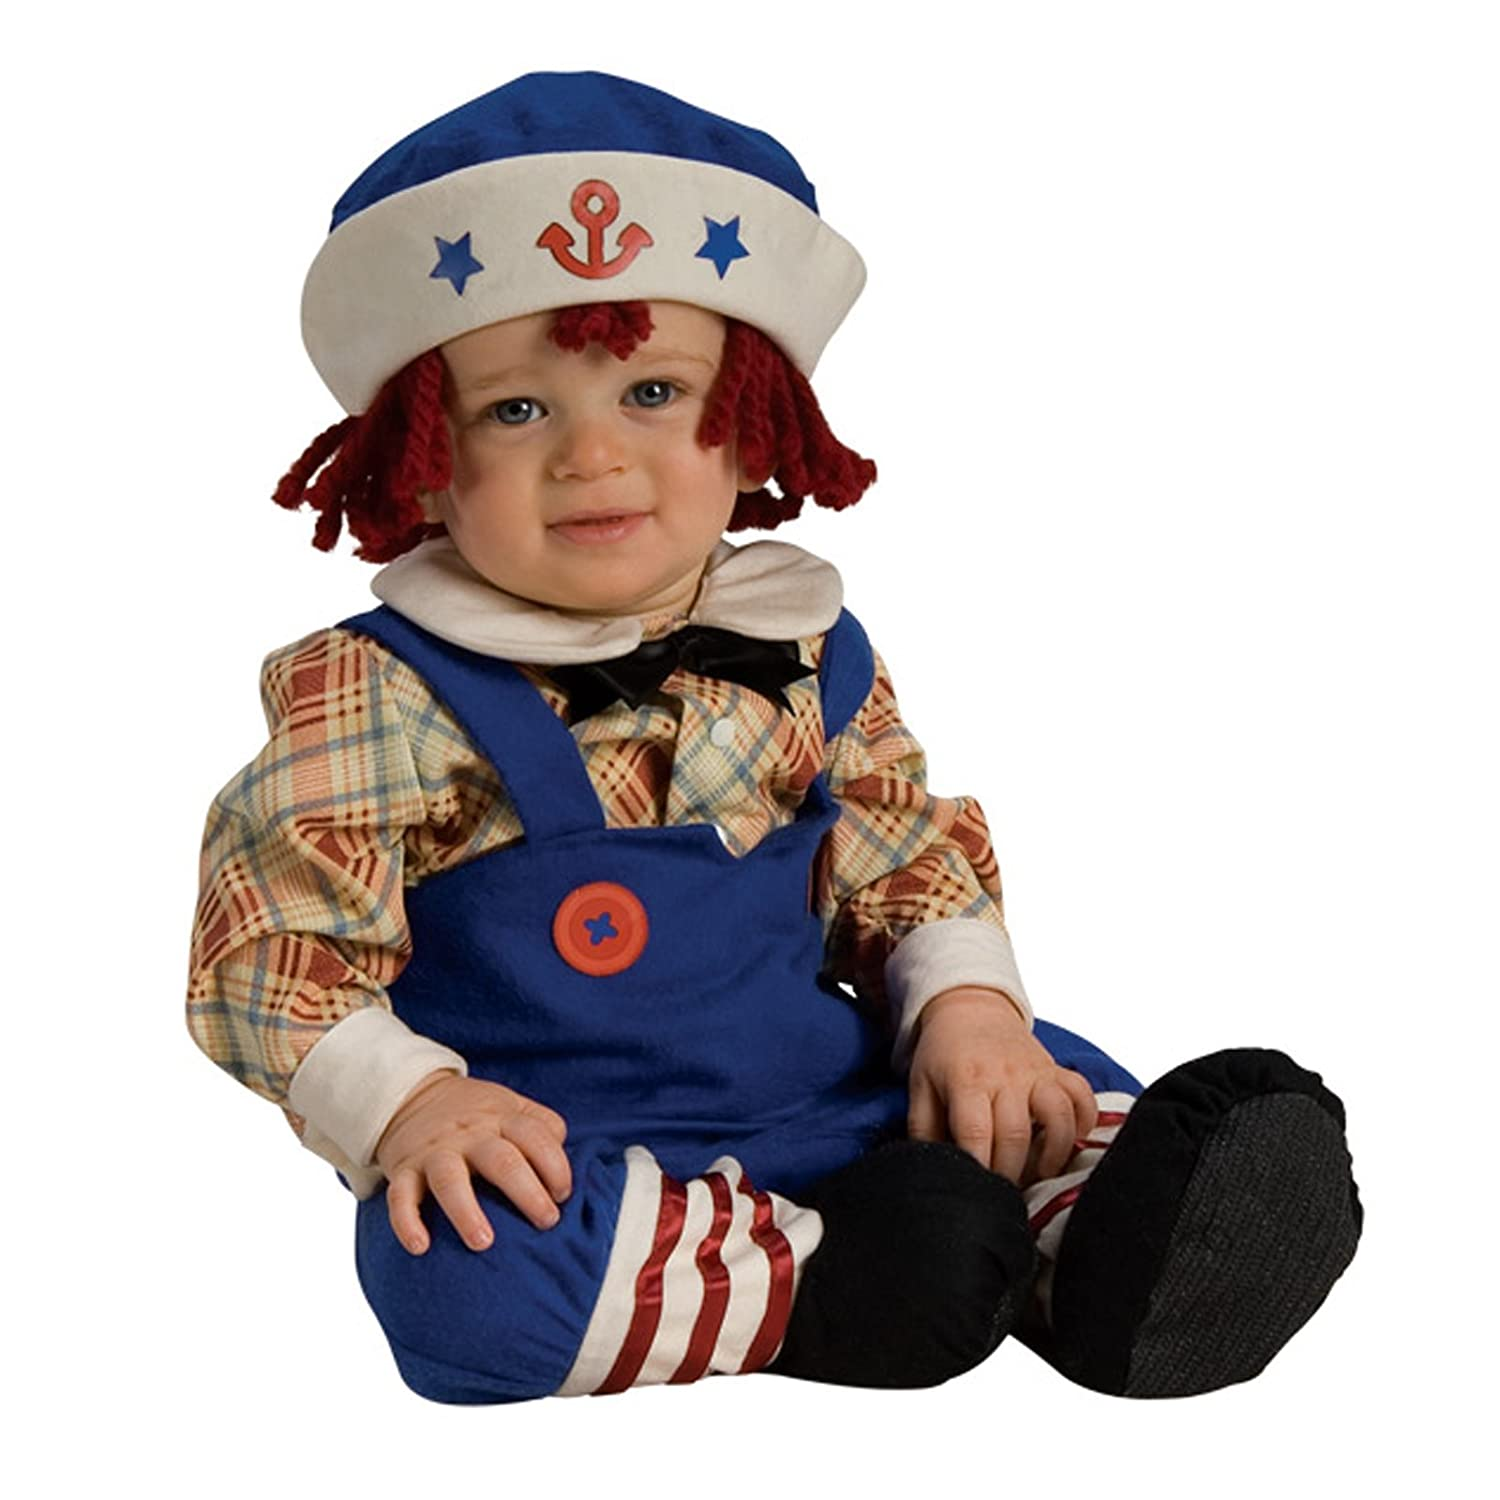 Yarn Babies Ragamuffin Sailor Infant / Toddler Costume